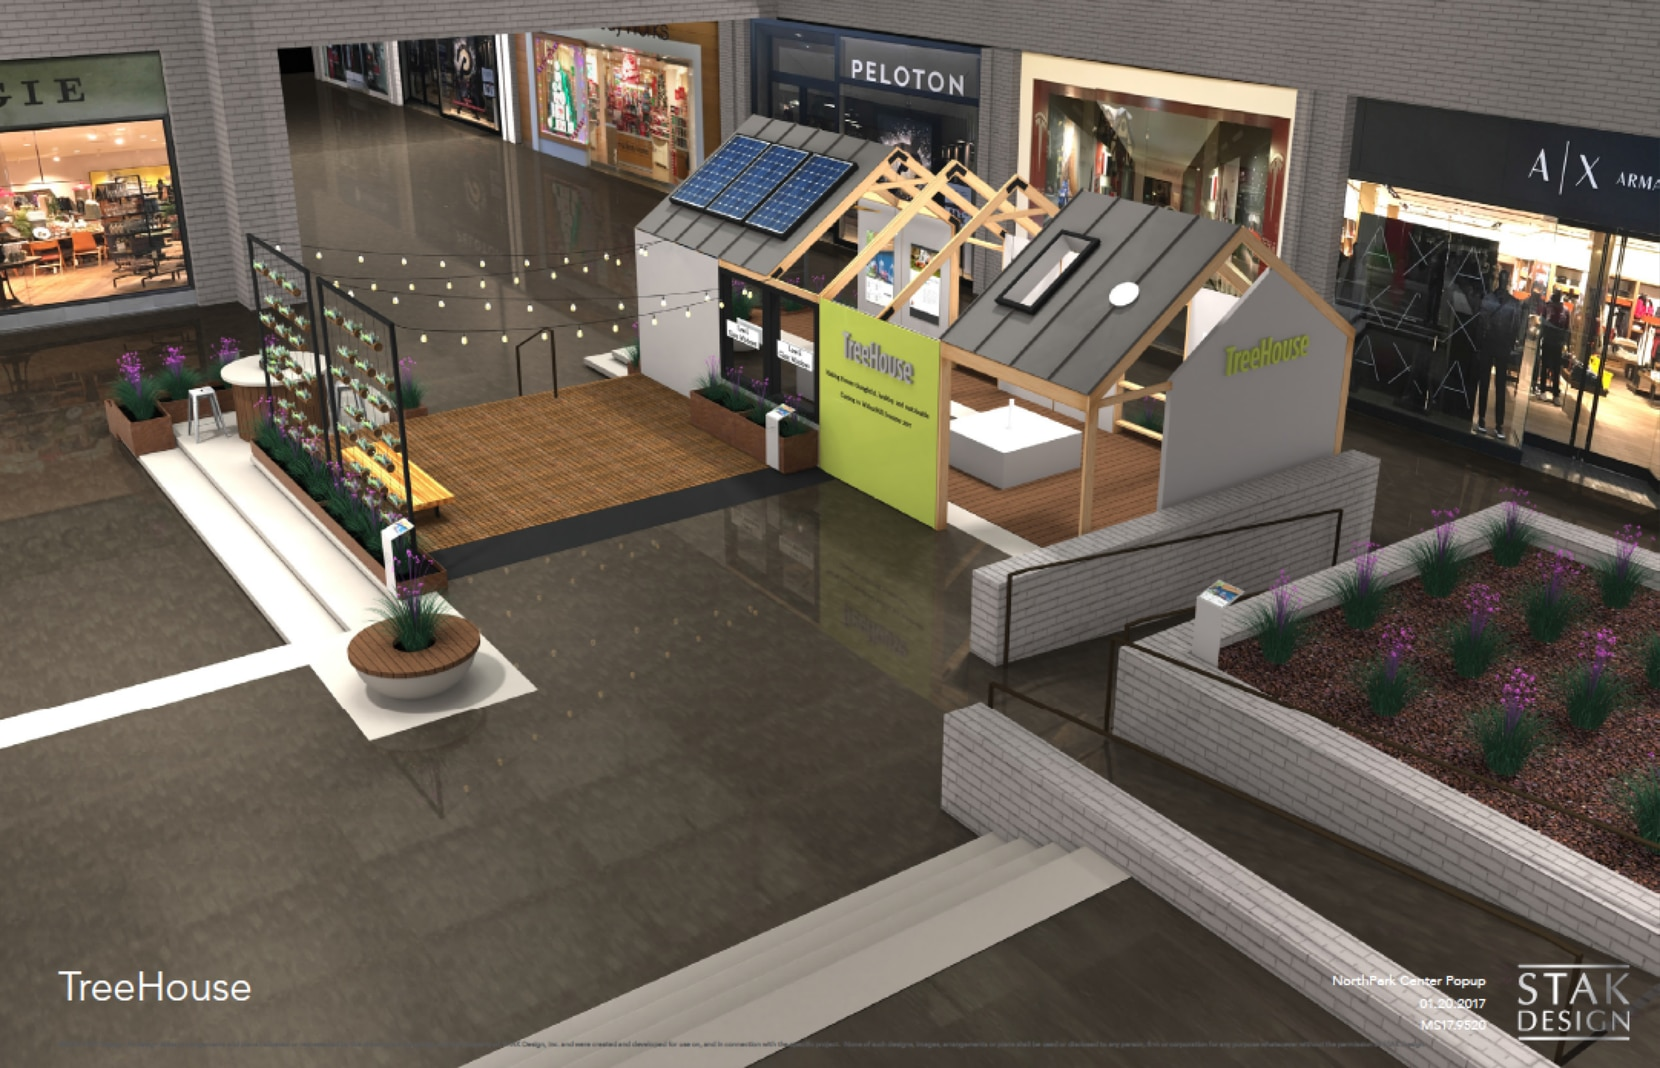 TreeHouse plans to introduce itself to Dallas with this 1,000-square-foot house display featuring products it sells inside NorthPark Center for two months starting April 1, 2017.